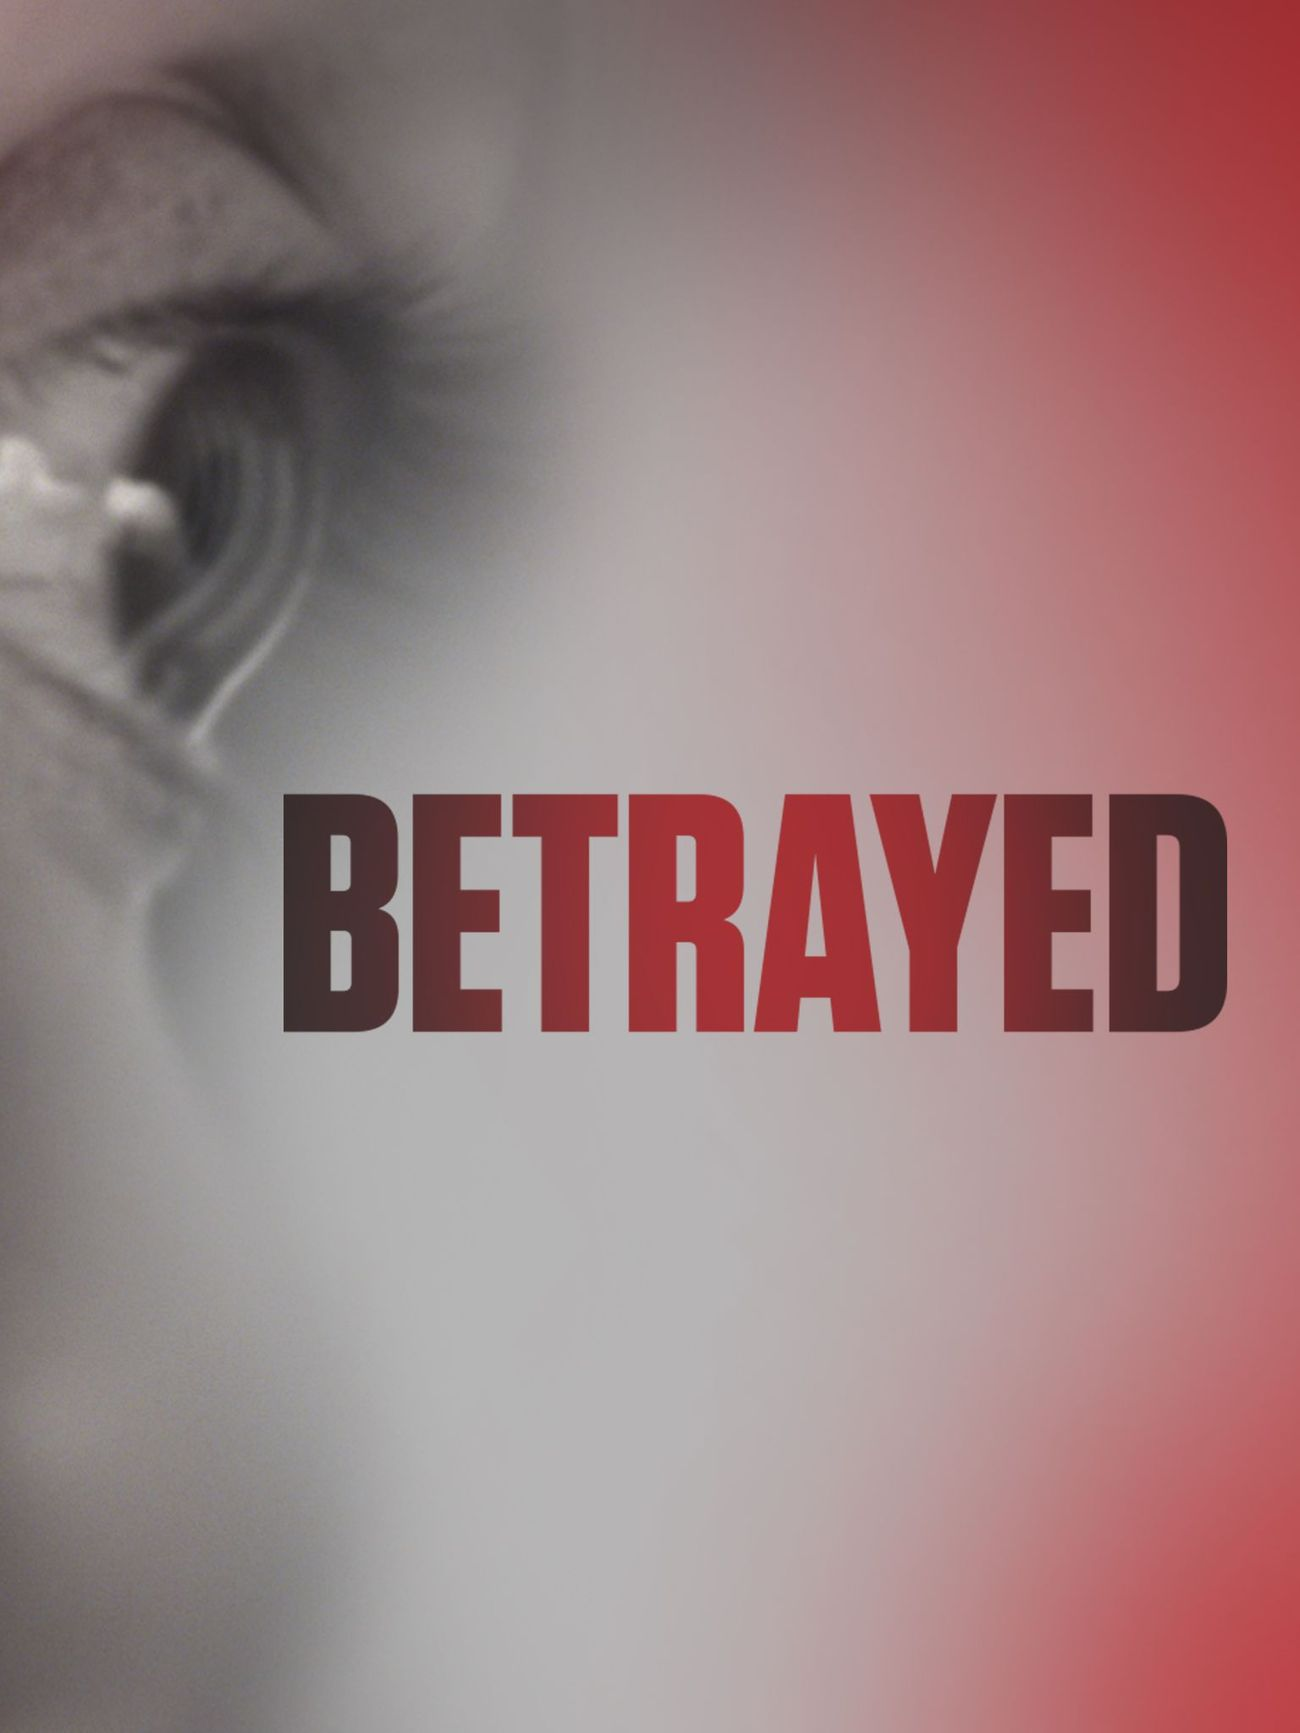 Betrayed Investigation Discovery